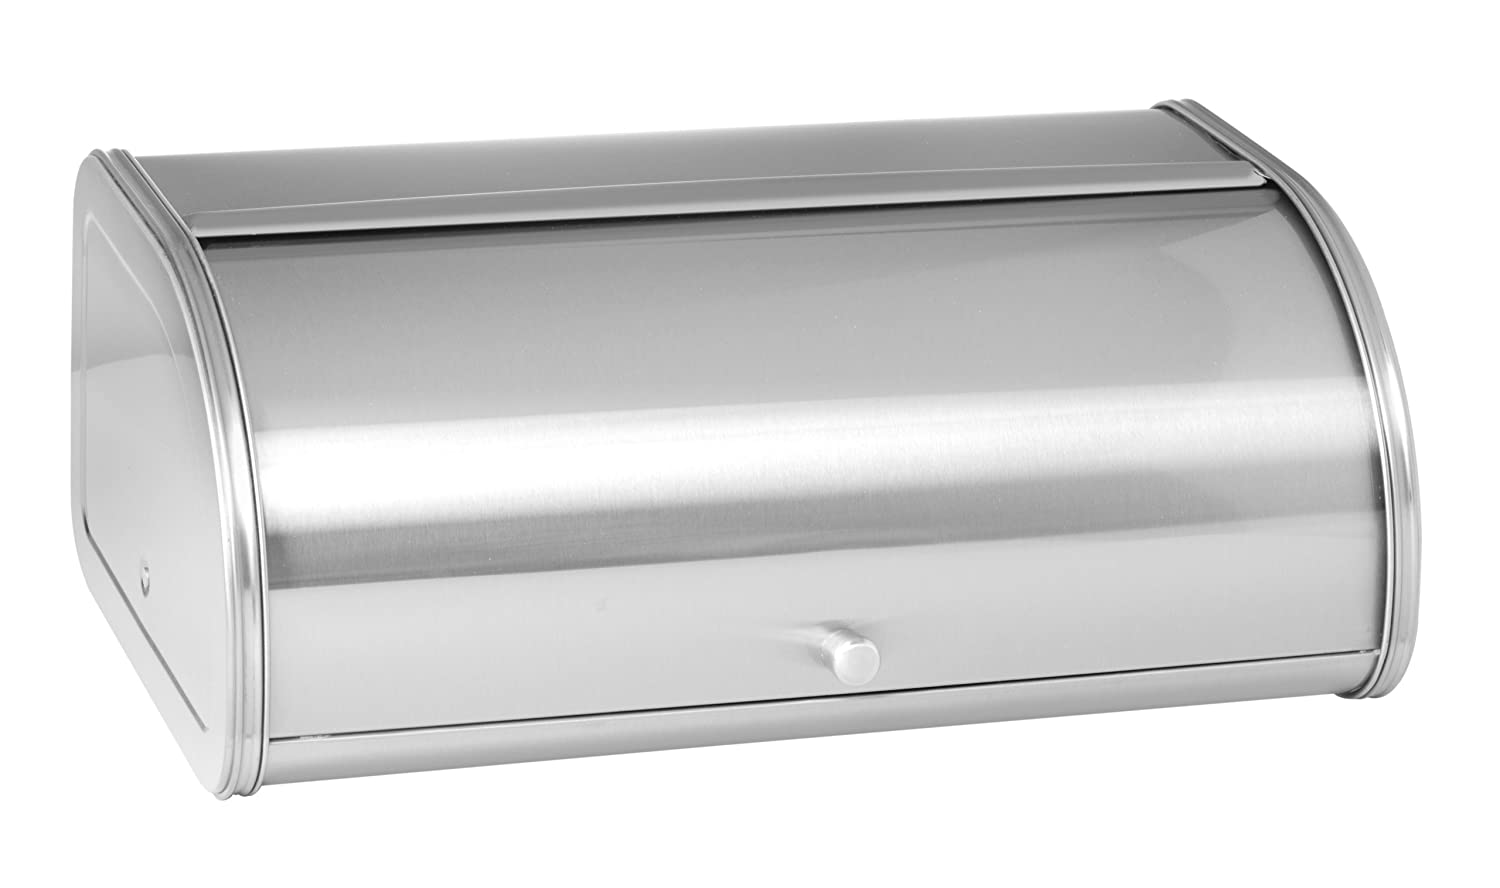 Anchor Hocking Fingerprint Free Brushed Steel Bread Box 98949